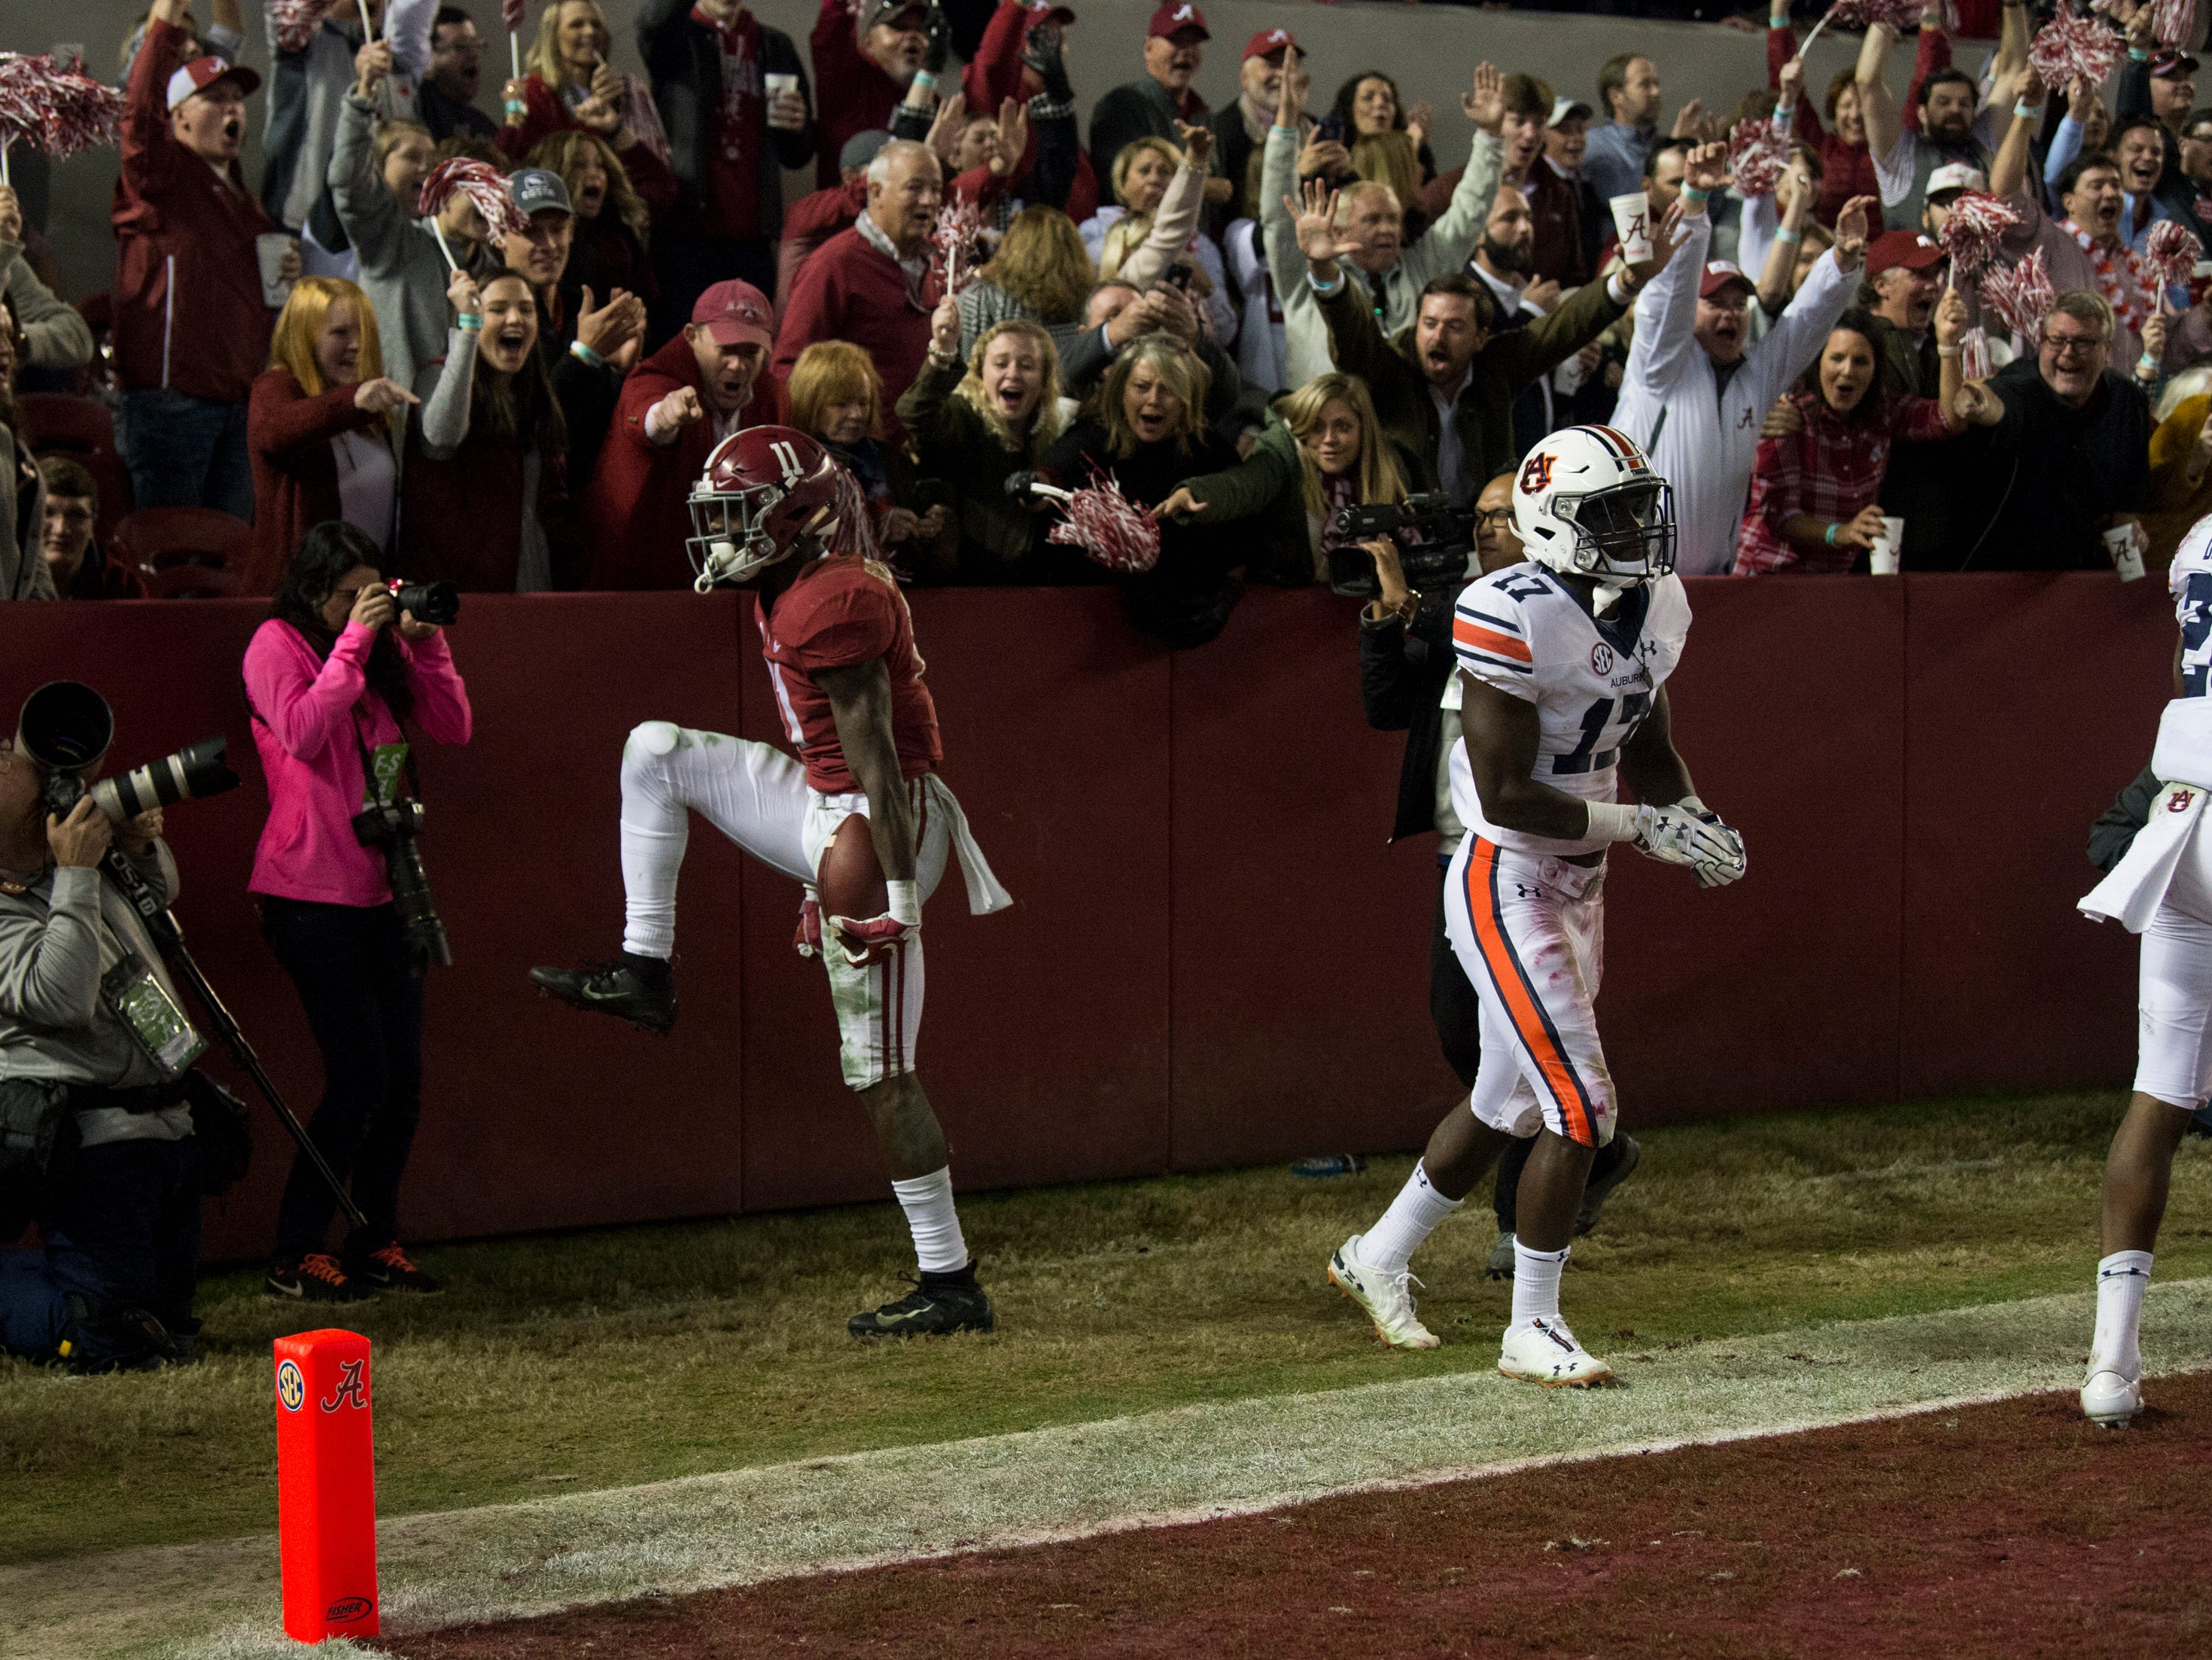 Alabama wide receiver Henry Ruggs, III, (11) reacts after catching a touchdown during the Iron Bowl at Bryant-Denny Stadium in Tuscaloosa, Ala., on Saturday, Nov. 24, 2018. Alabama defeated Auburn 52-21.